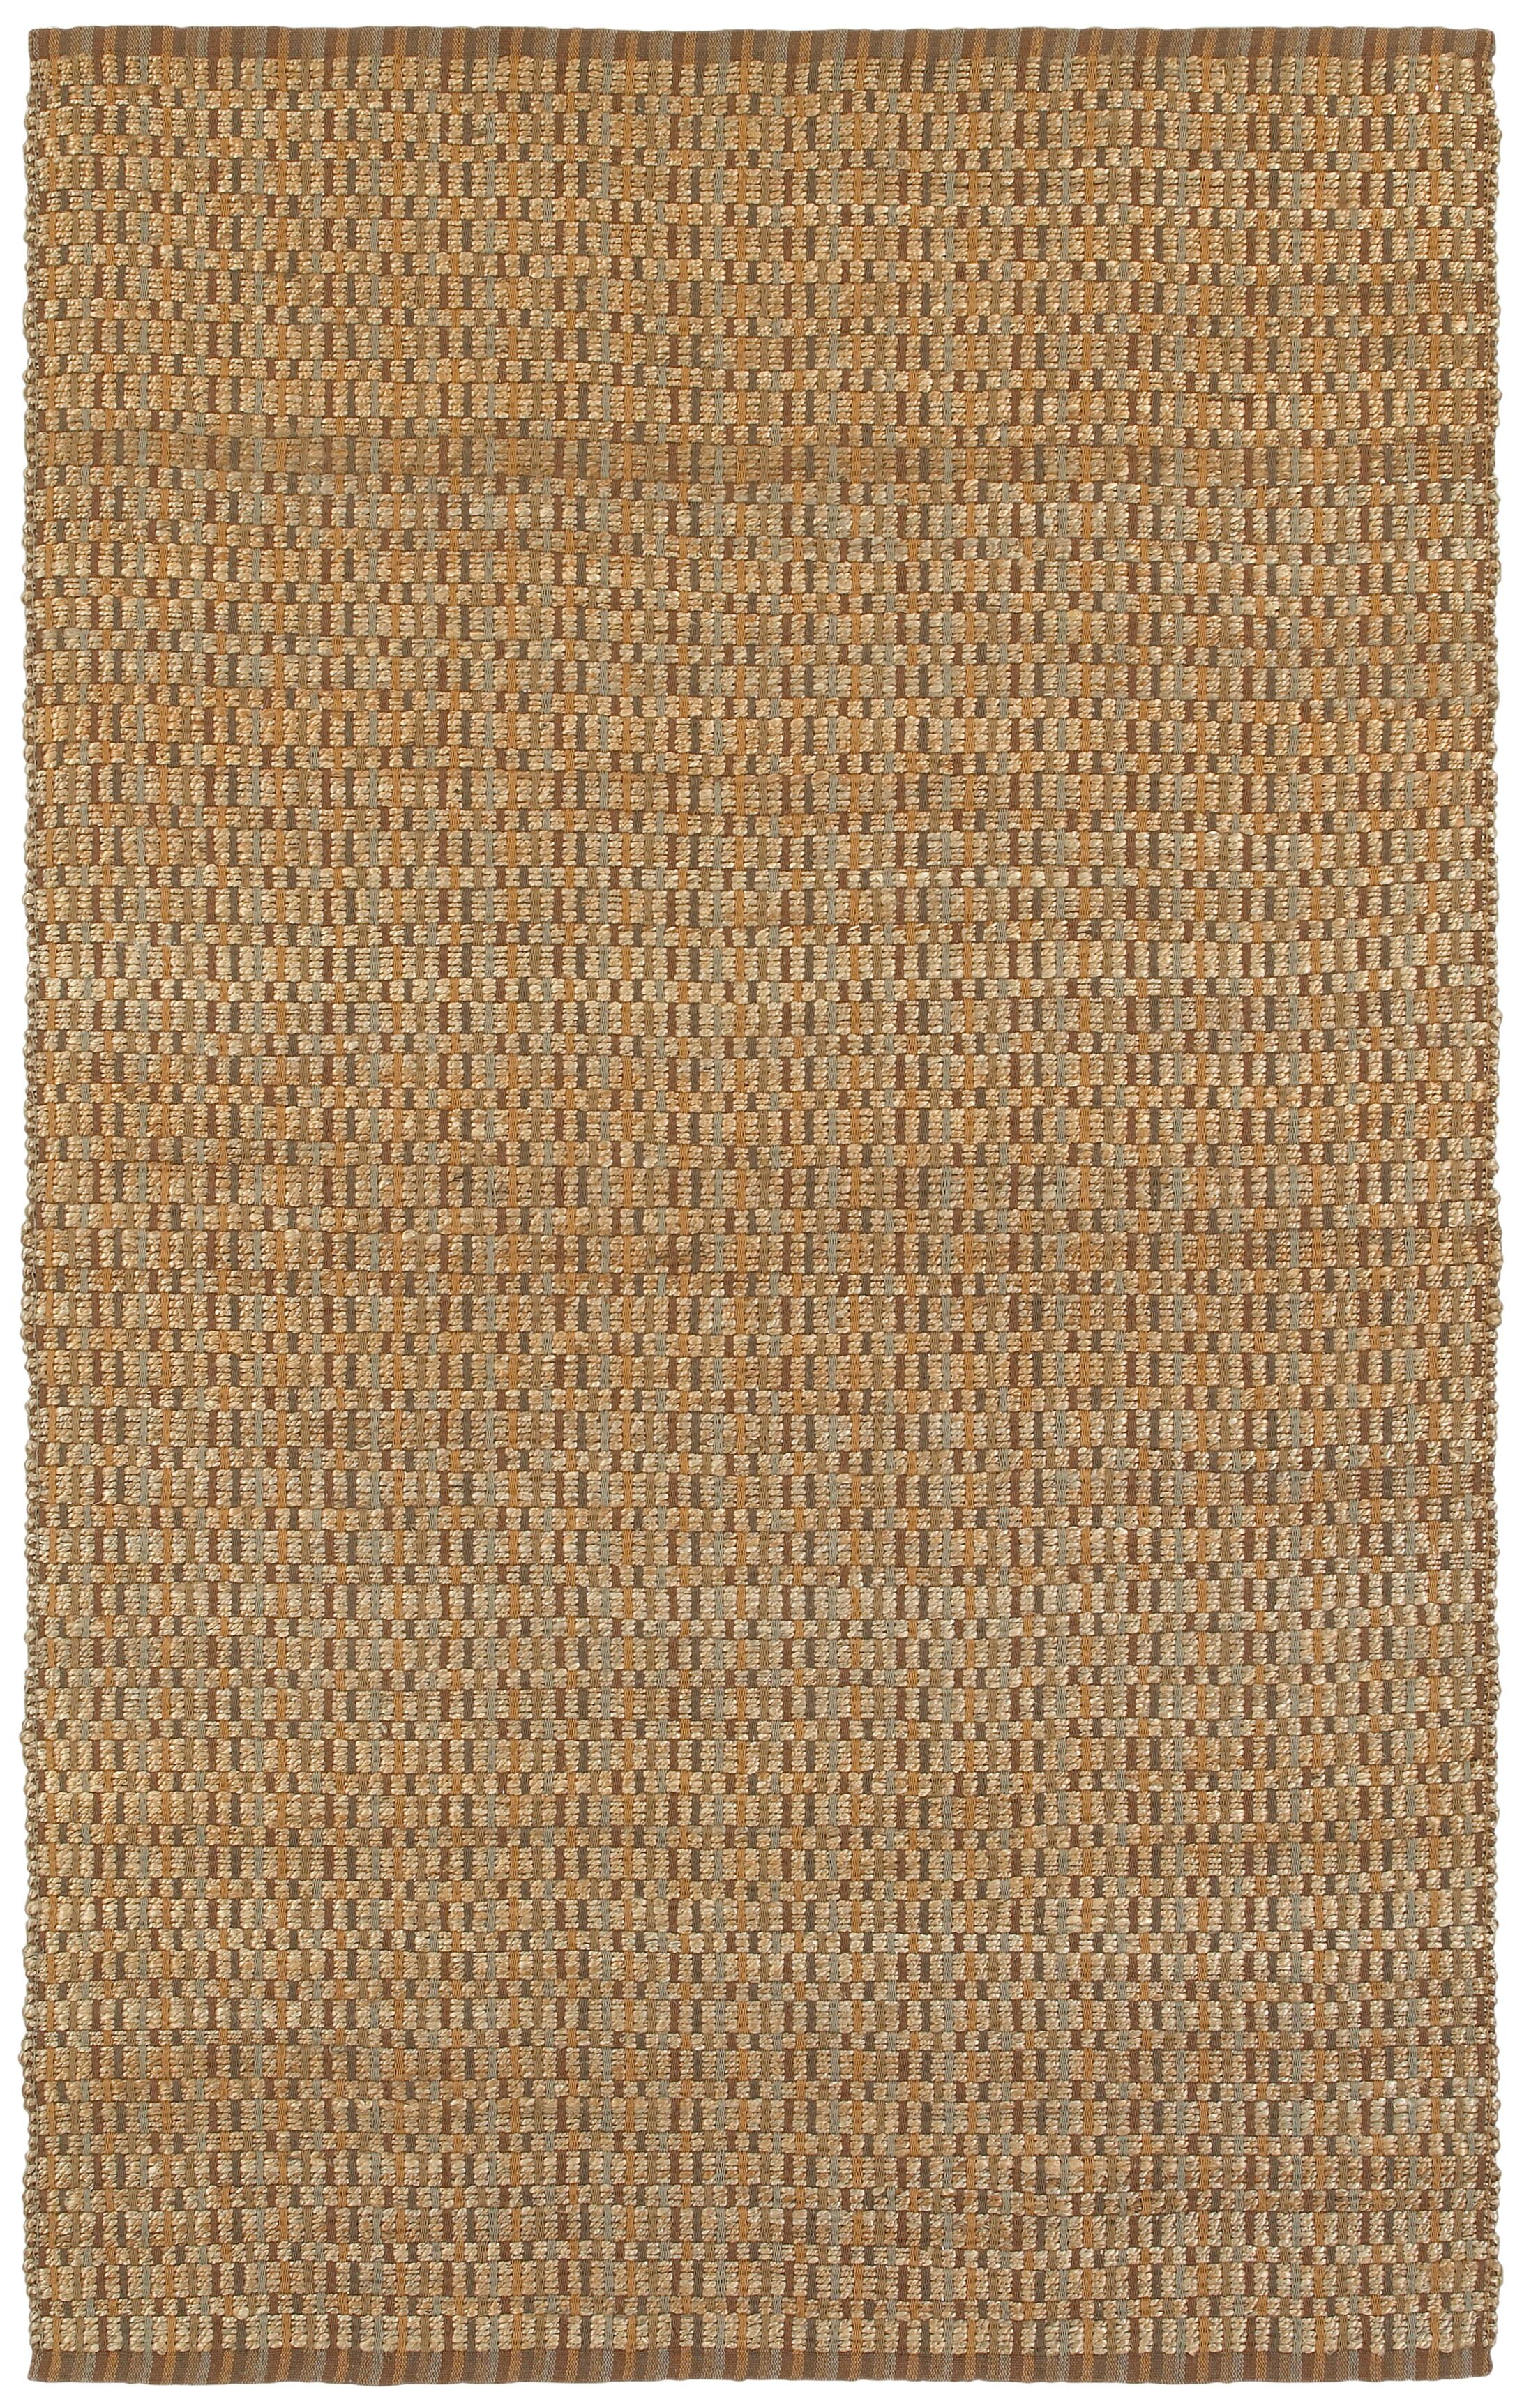 Abbotsford Hand-Woven Natural Area Rug Rug Size: Rectangle 5' x 7'9